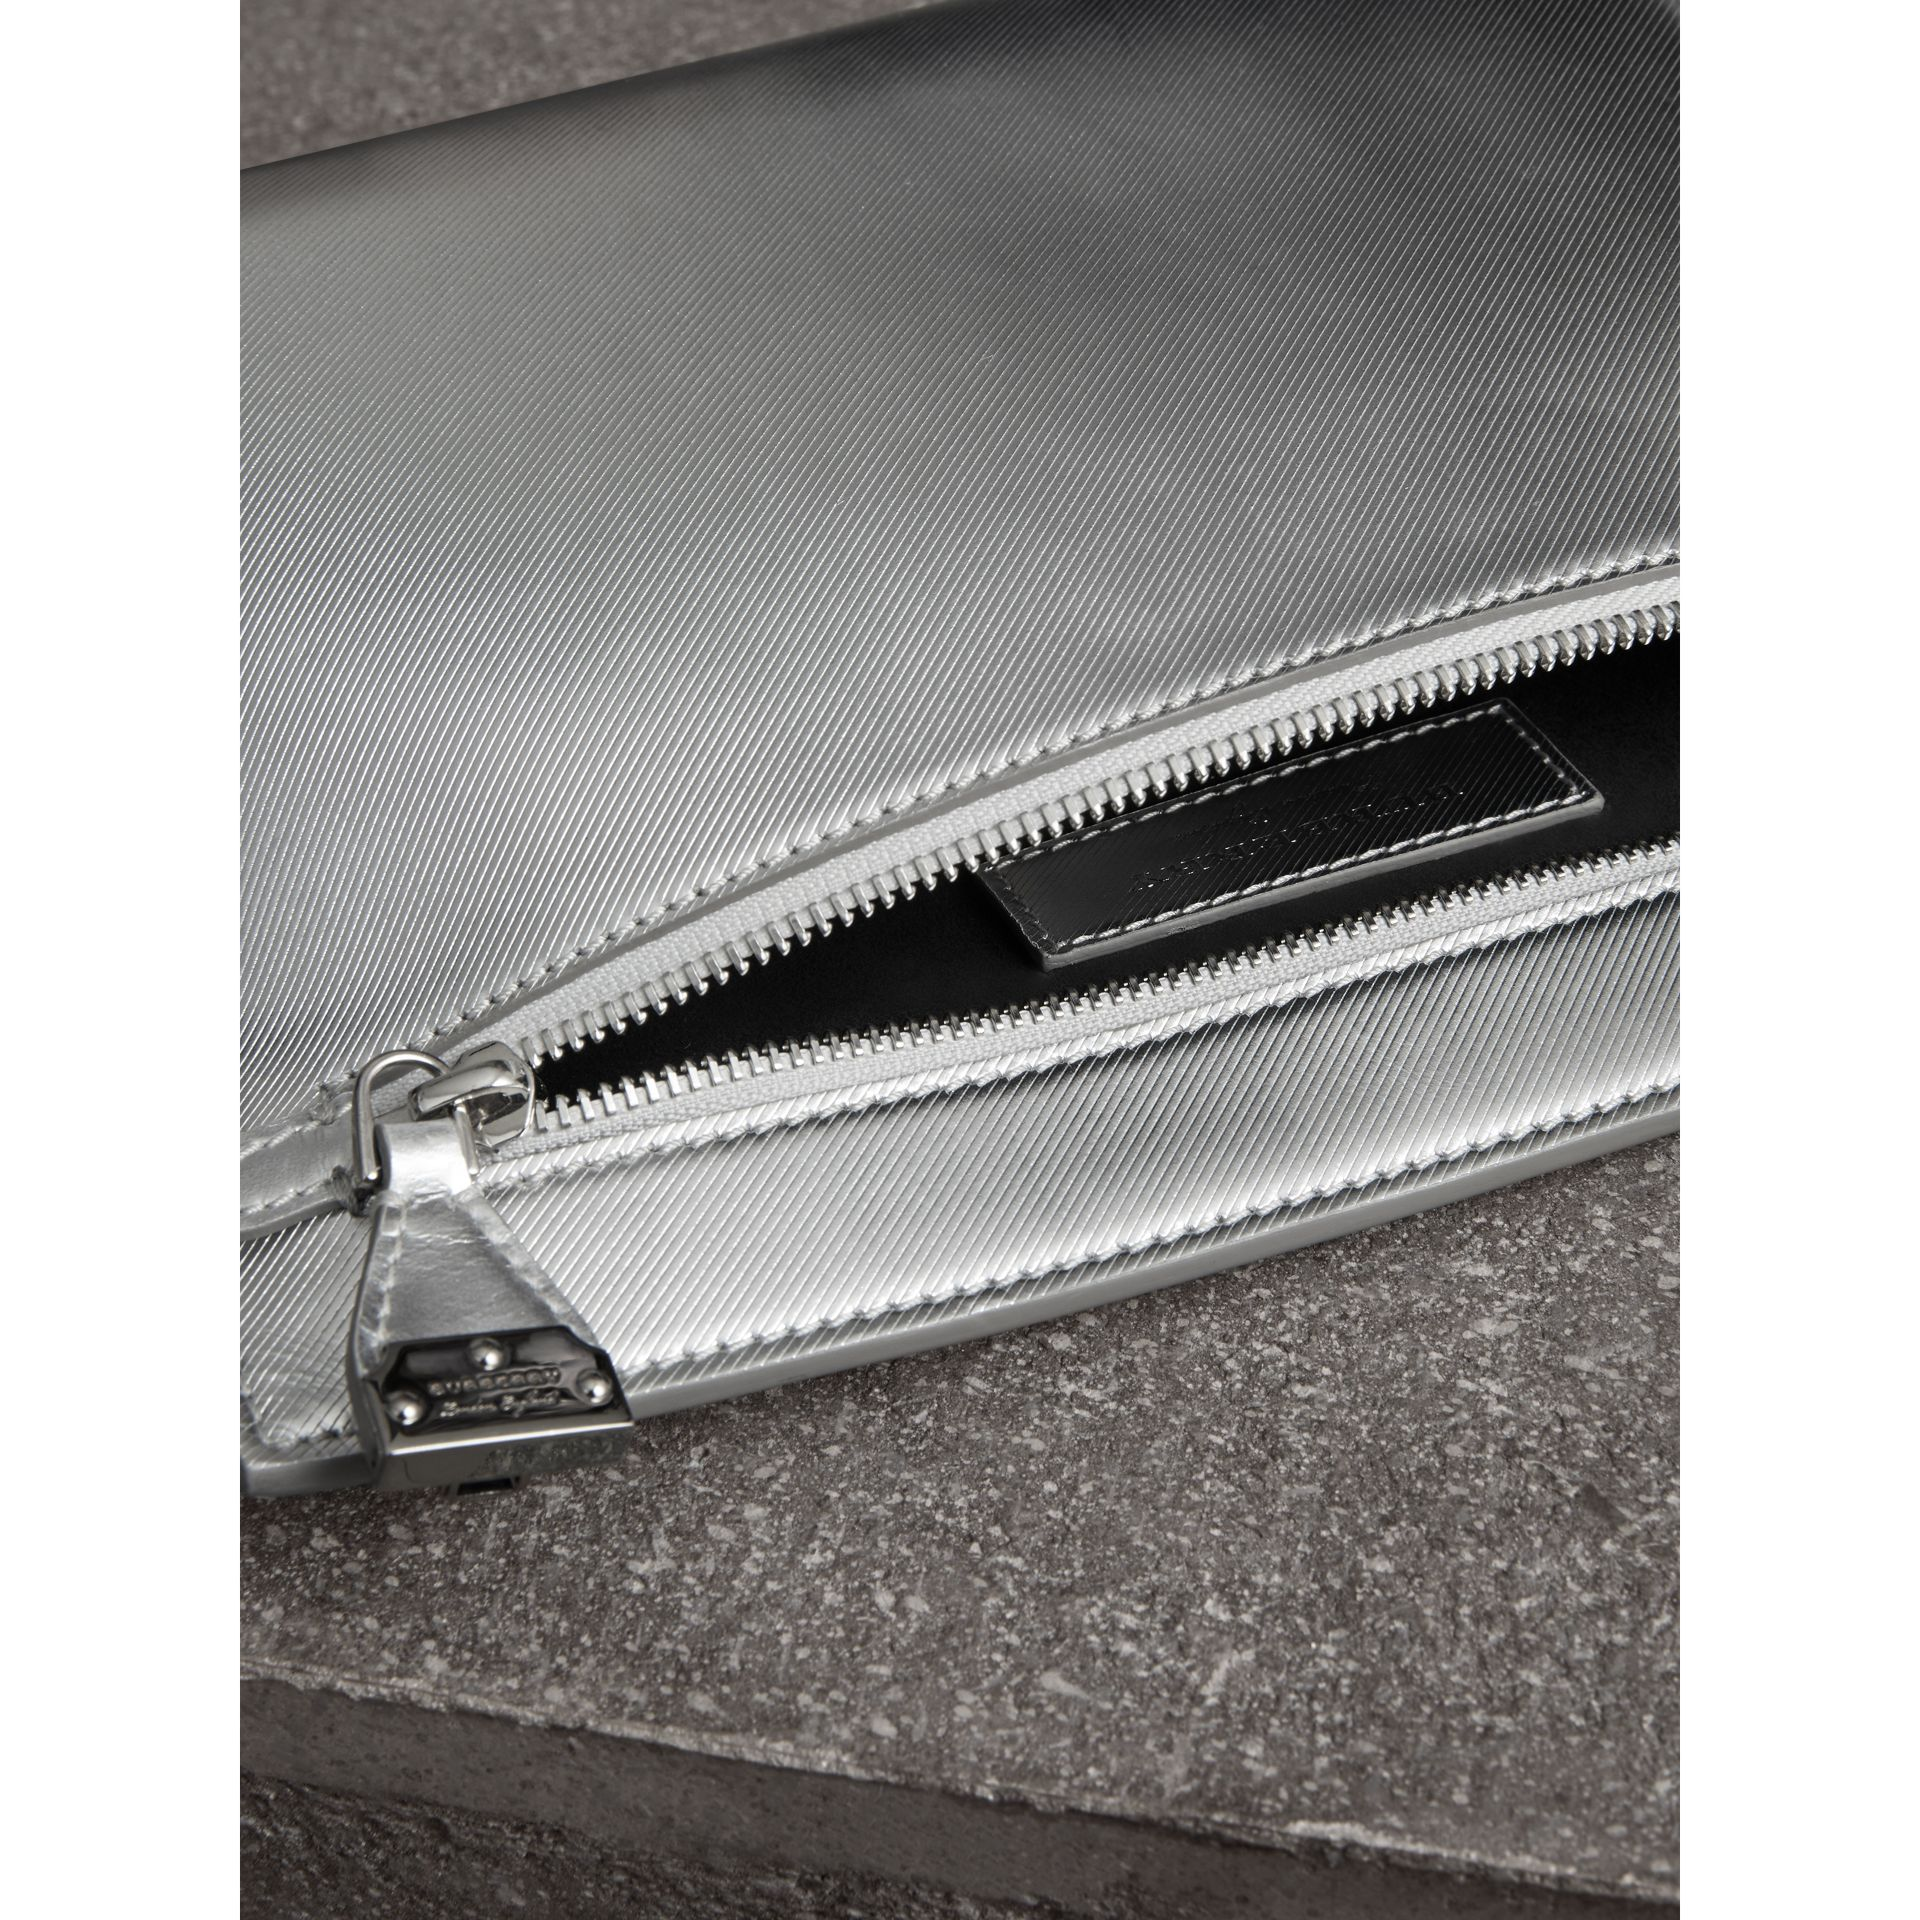 Metallic Trench Leather Pouch in Silver - Women | Burberry United States - gallery image 4